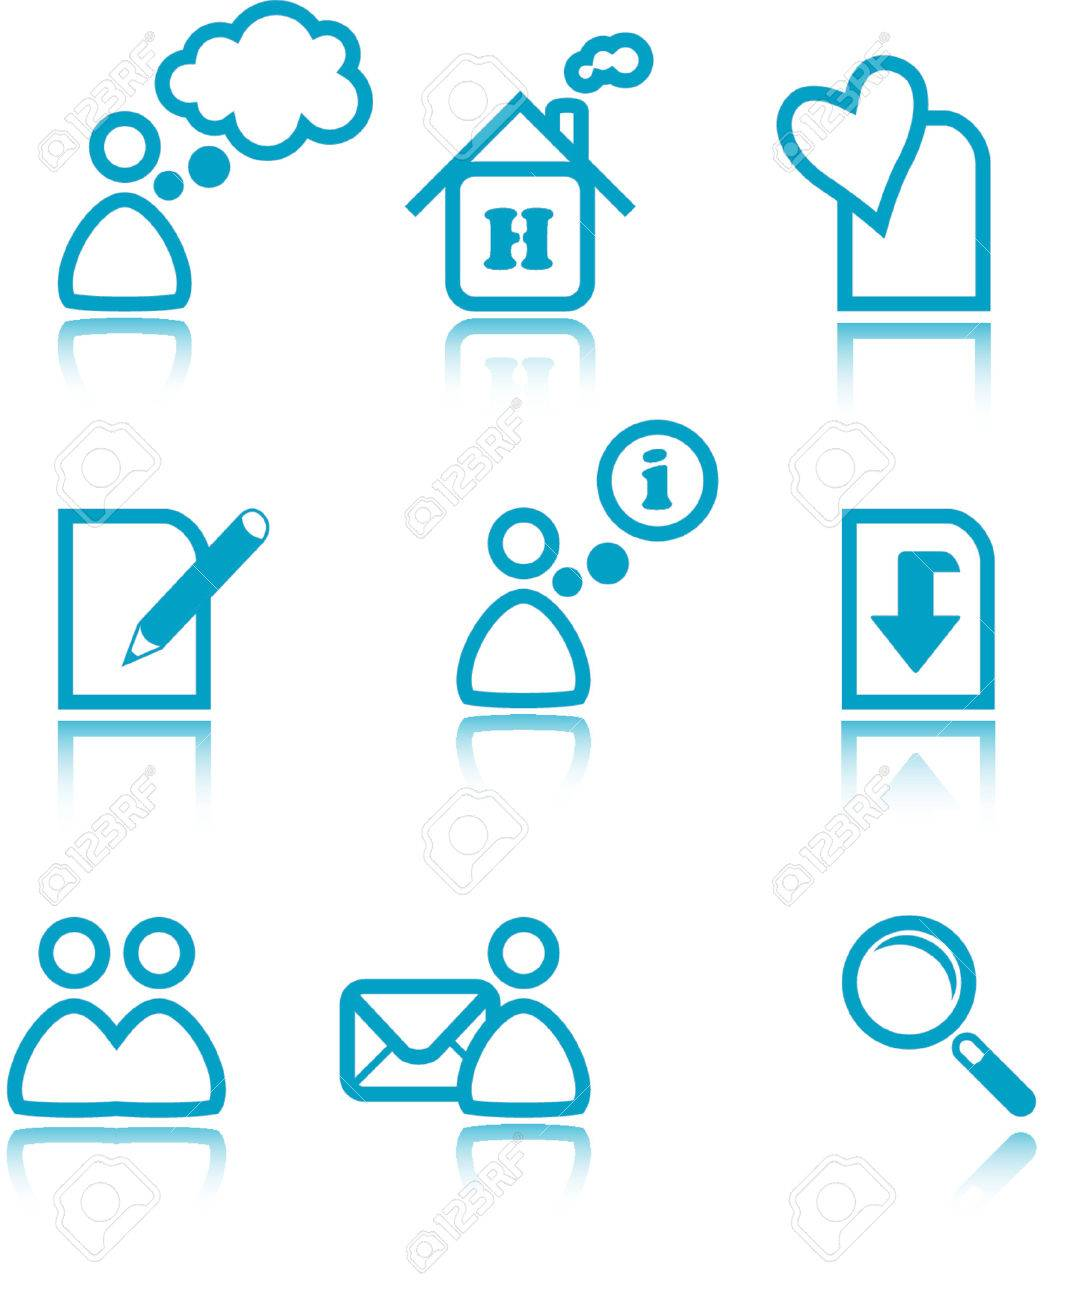 Web icons - simple blue icon set Stock Vector - 825531